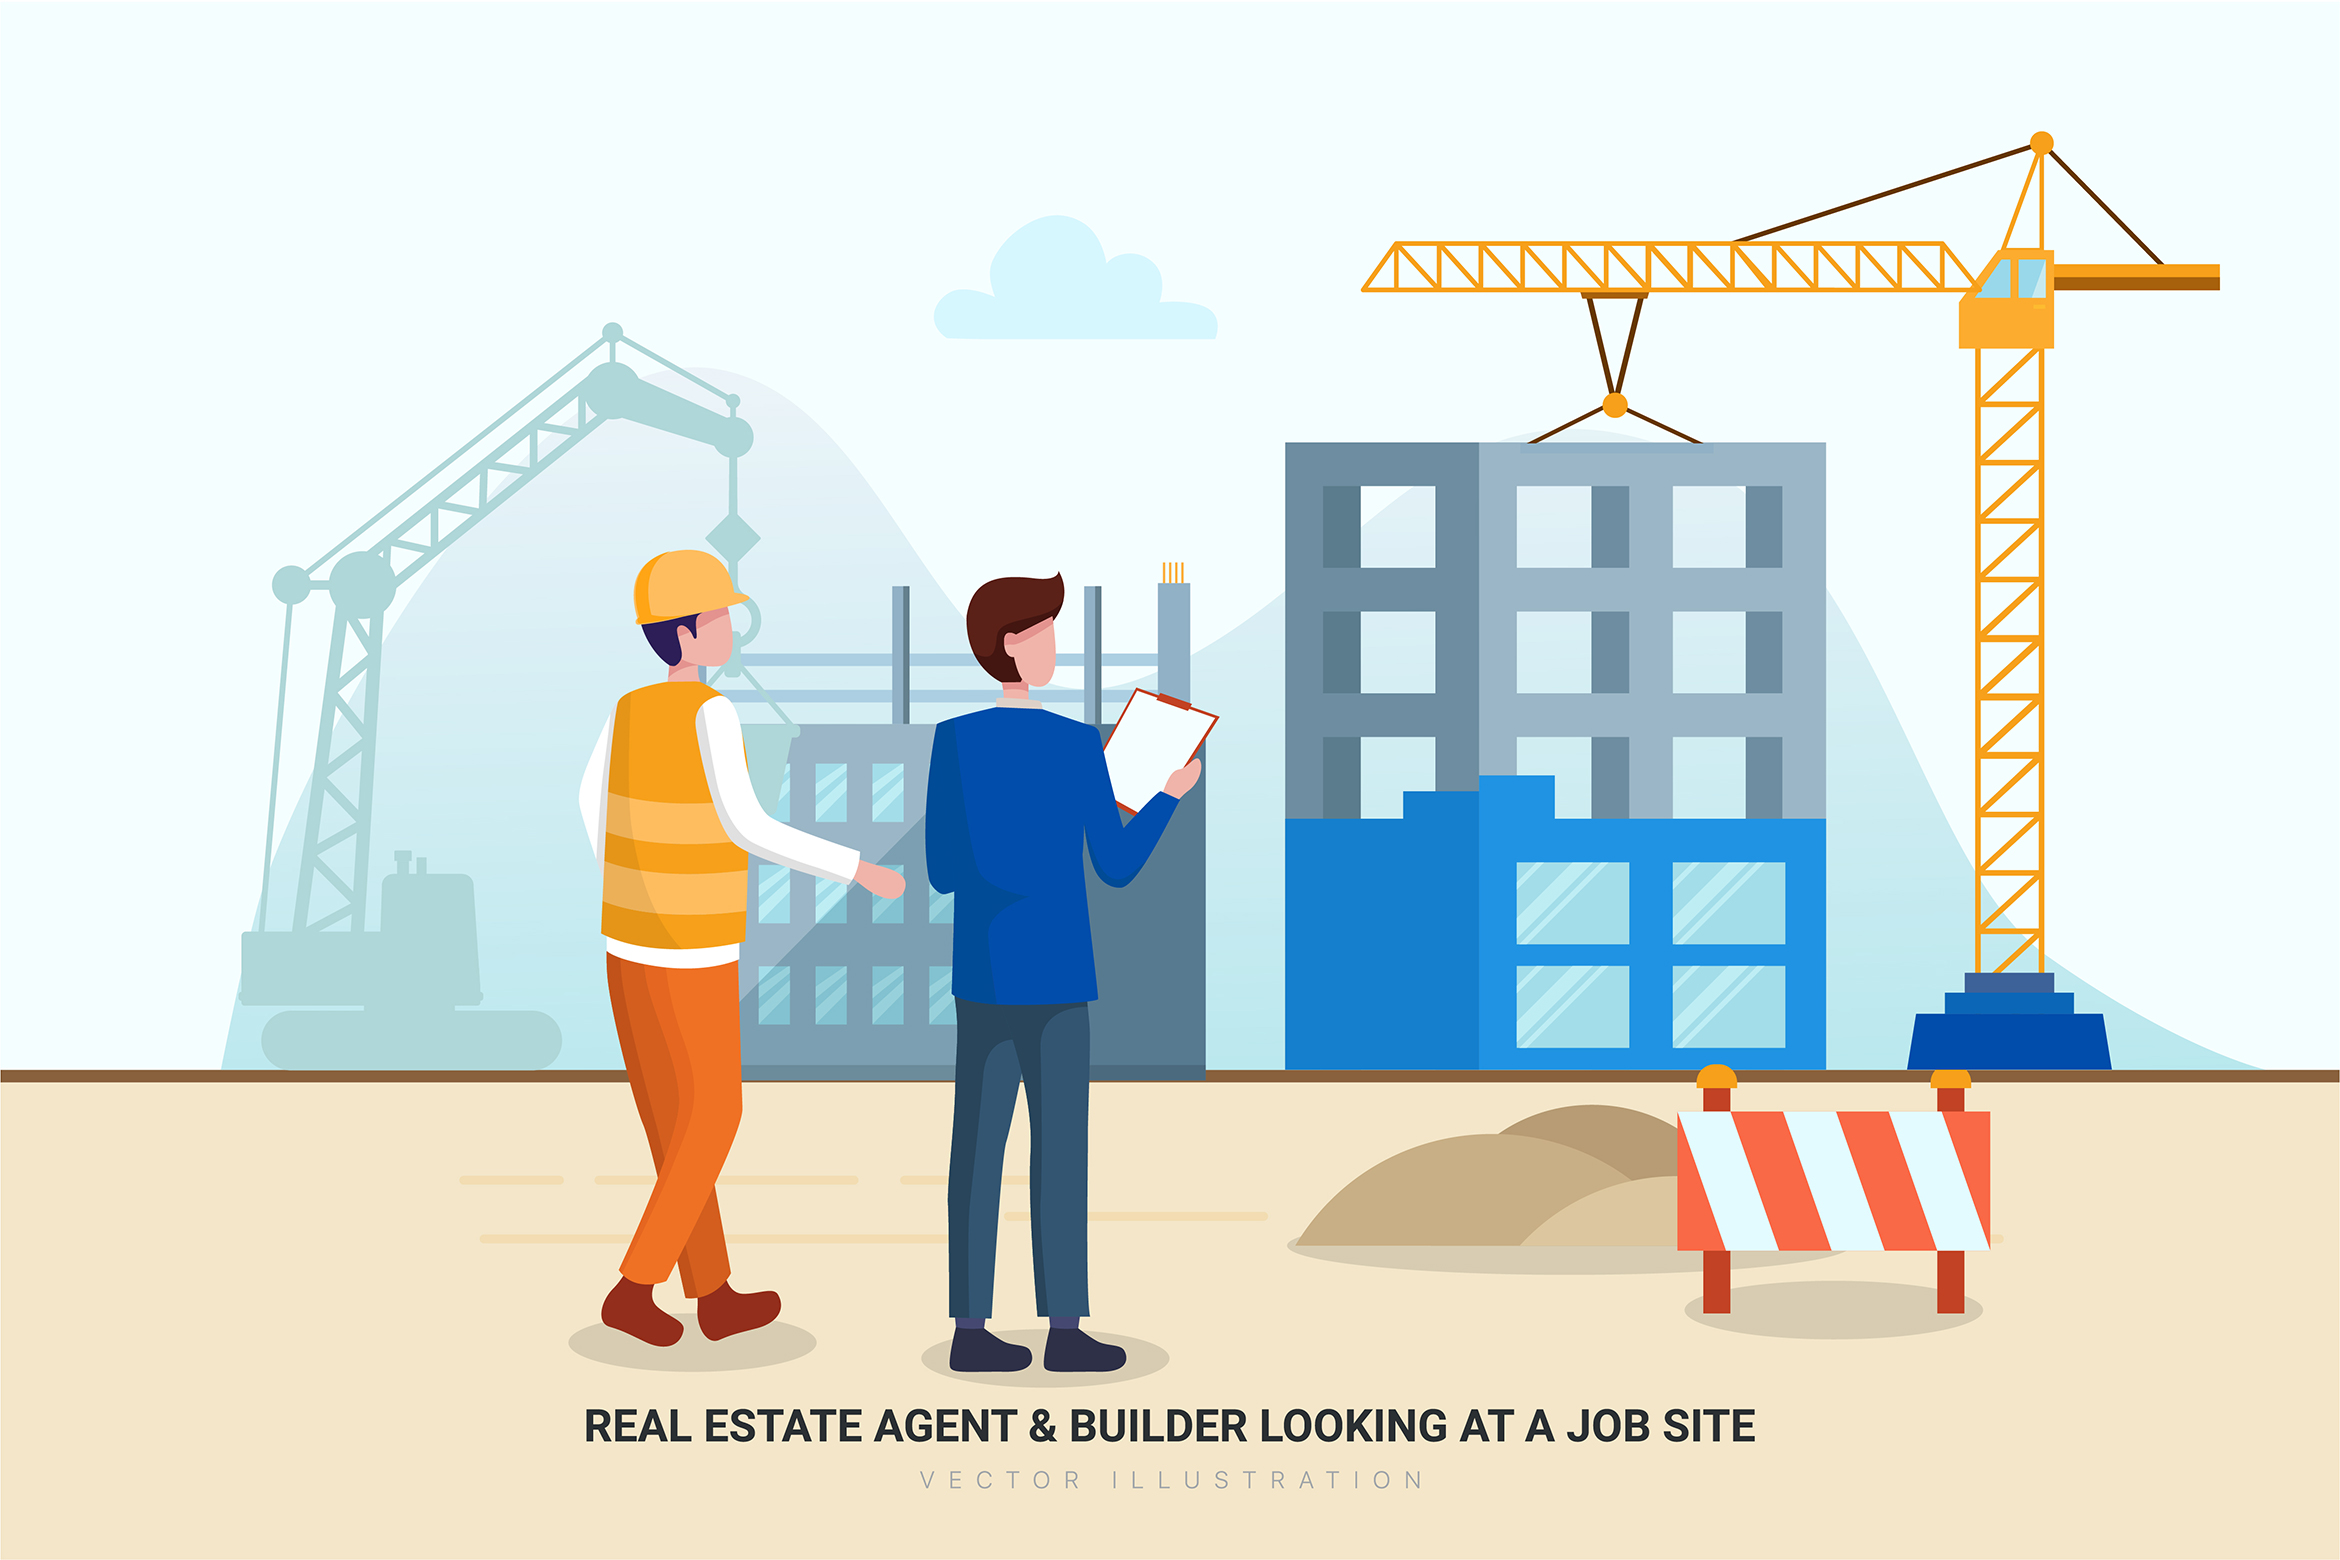 Construction & Real Estate Vector Illustration - Part 30 example image 12